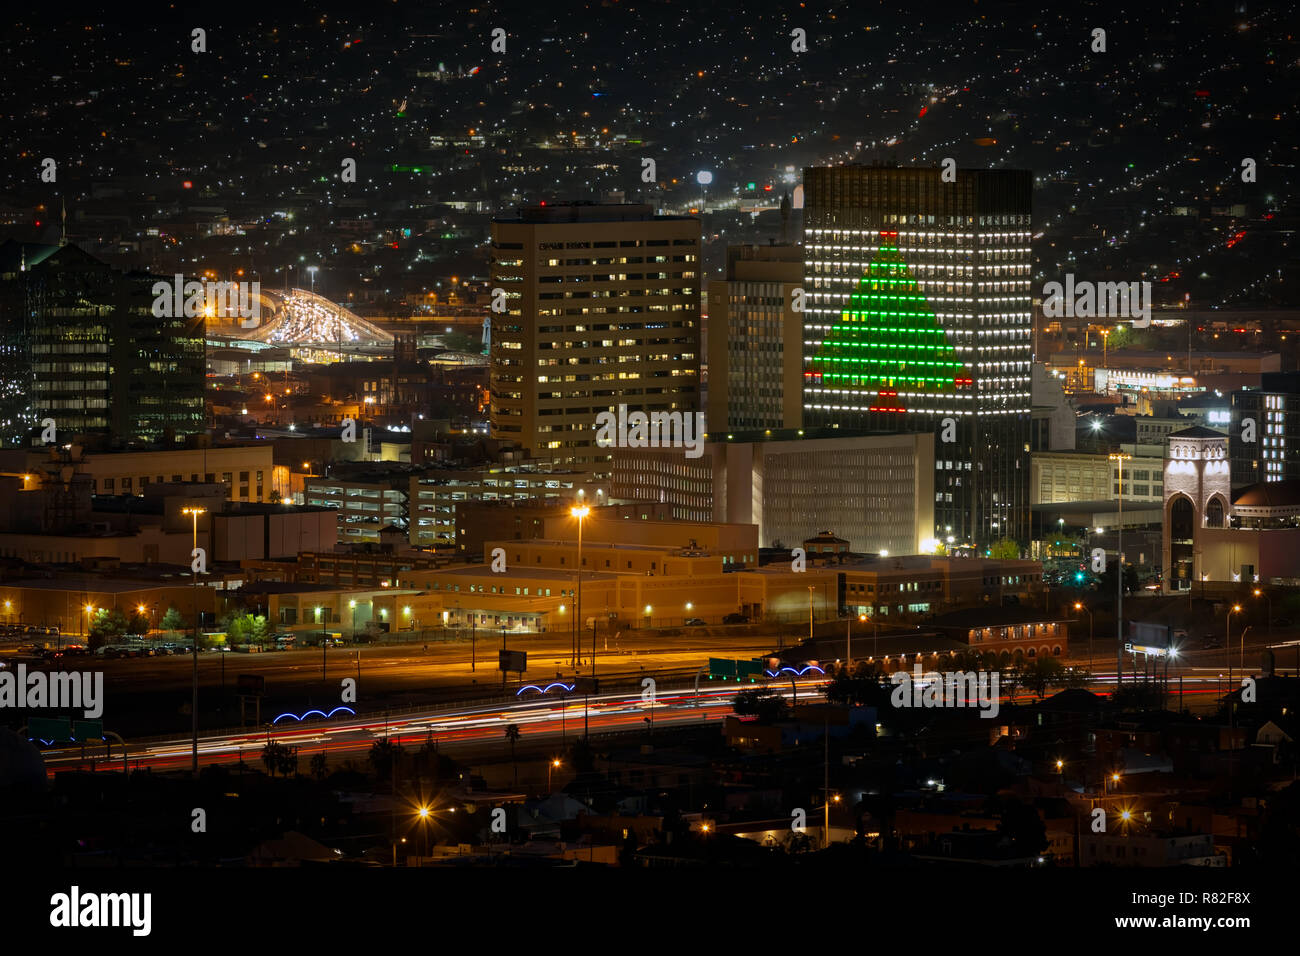 El Paso Christmas Lights.The Lights Of Downtown El Paso Texas Decked Out For